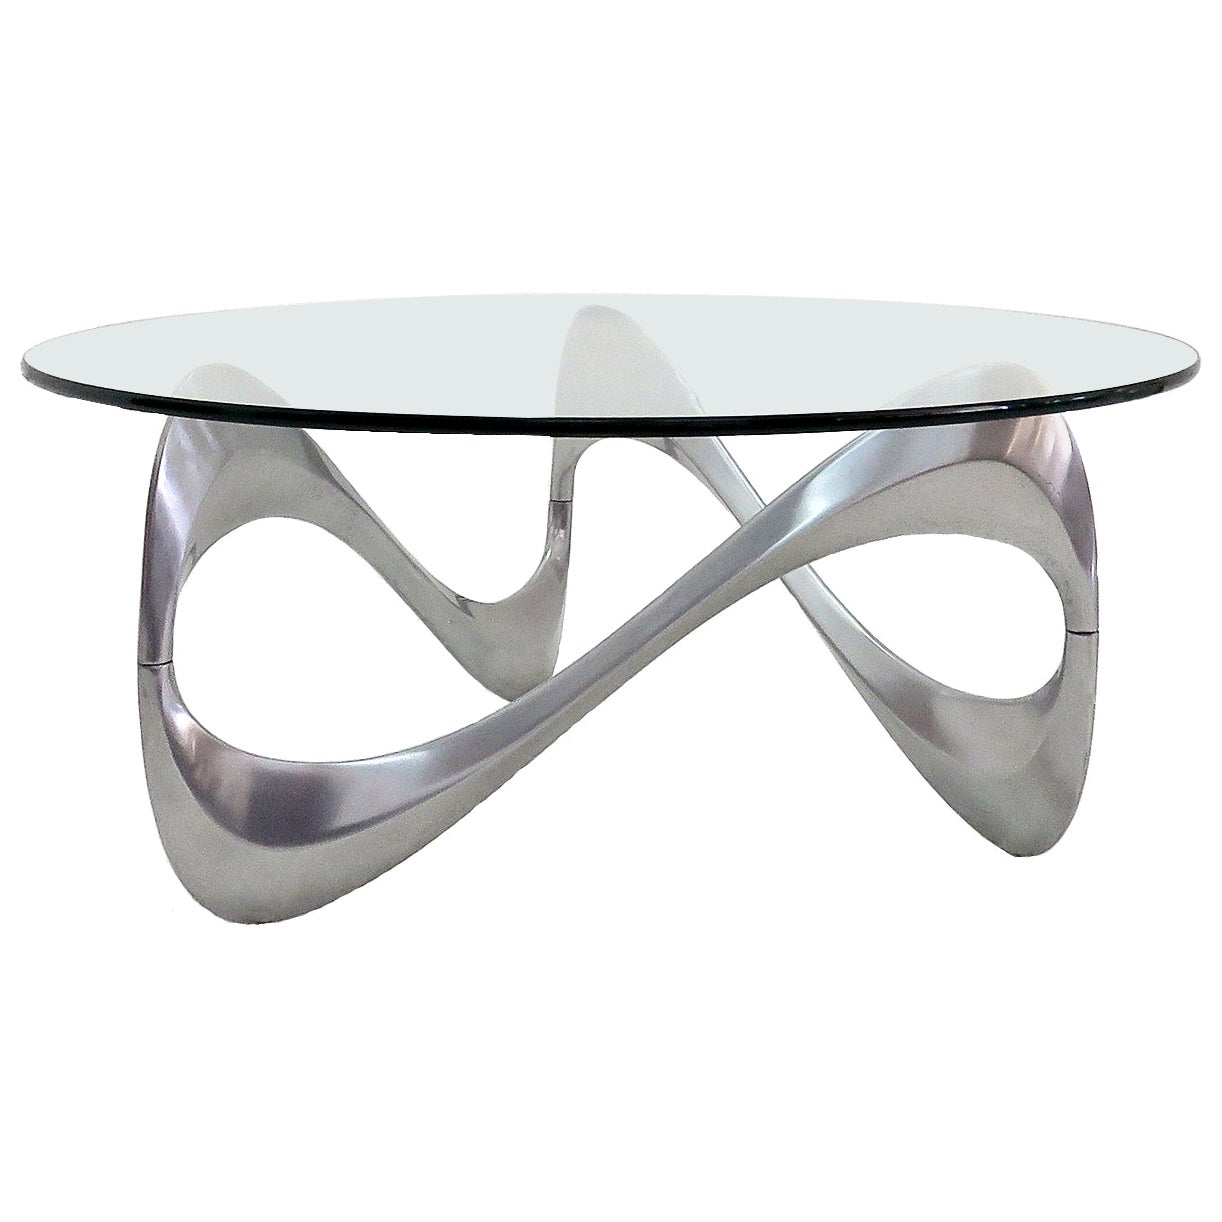 "Ronald Schmitt Coffee Table ""Schlangentisch"", 1965"